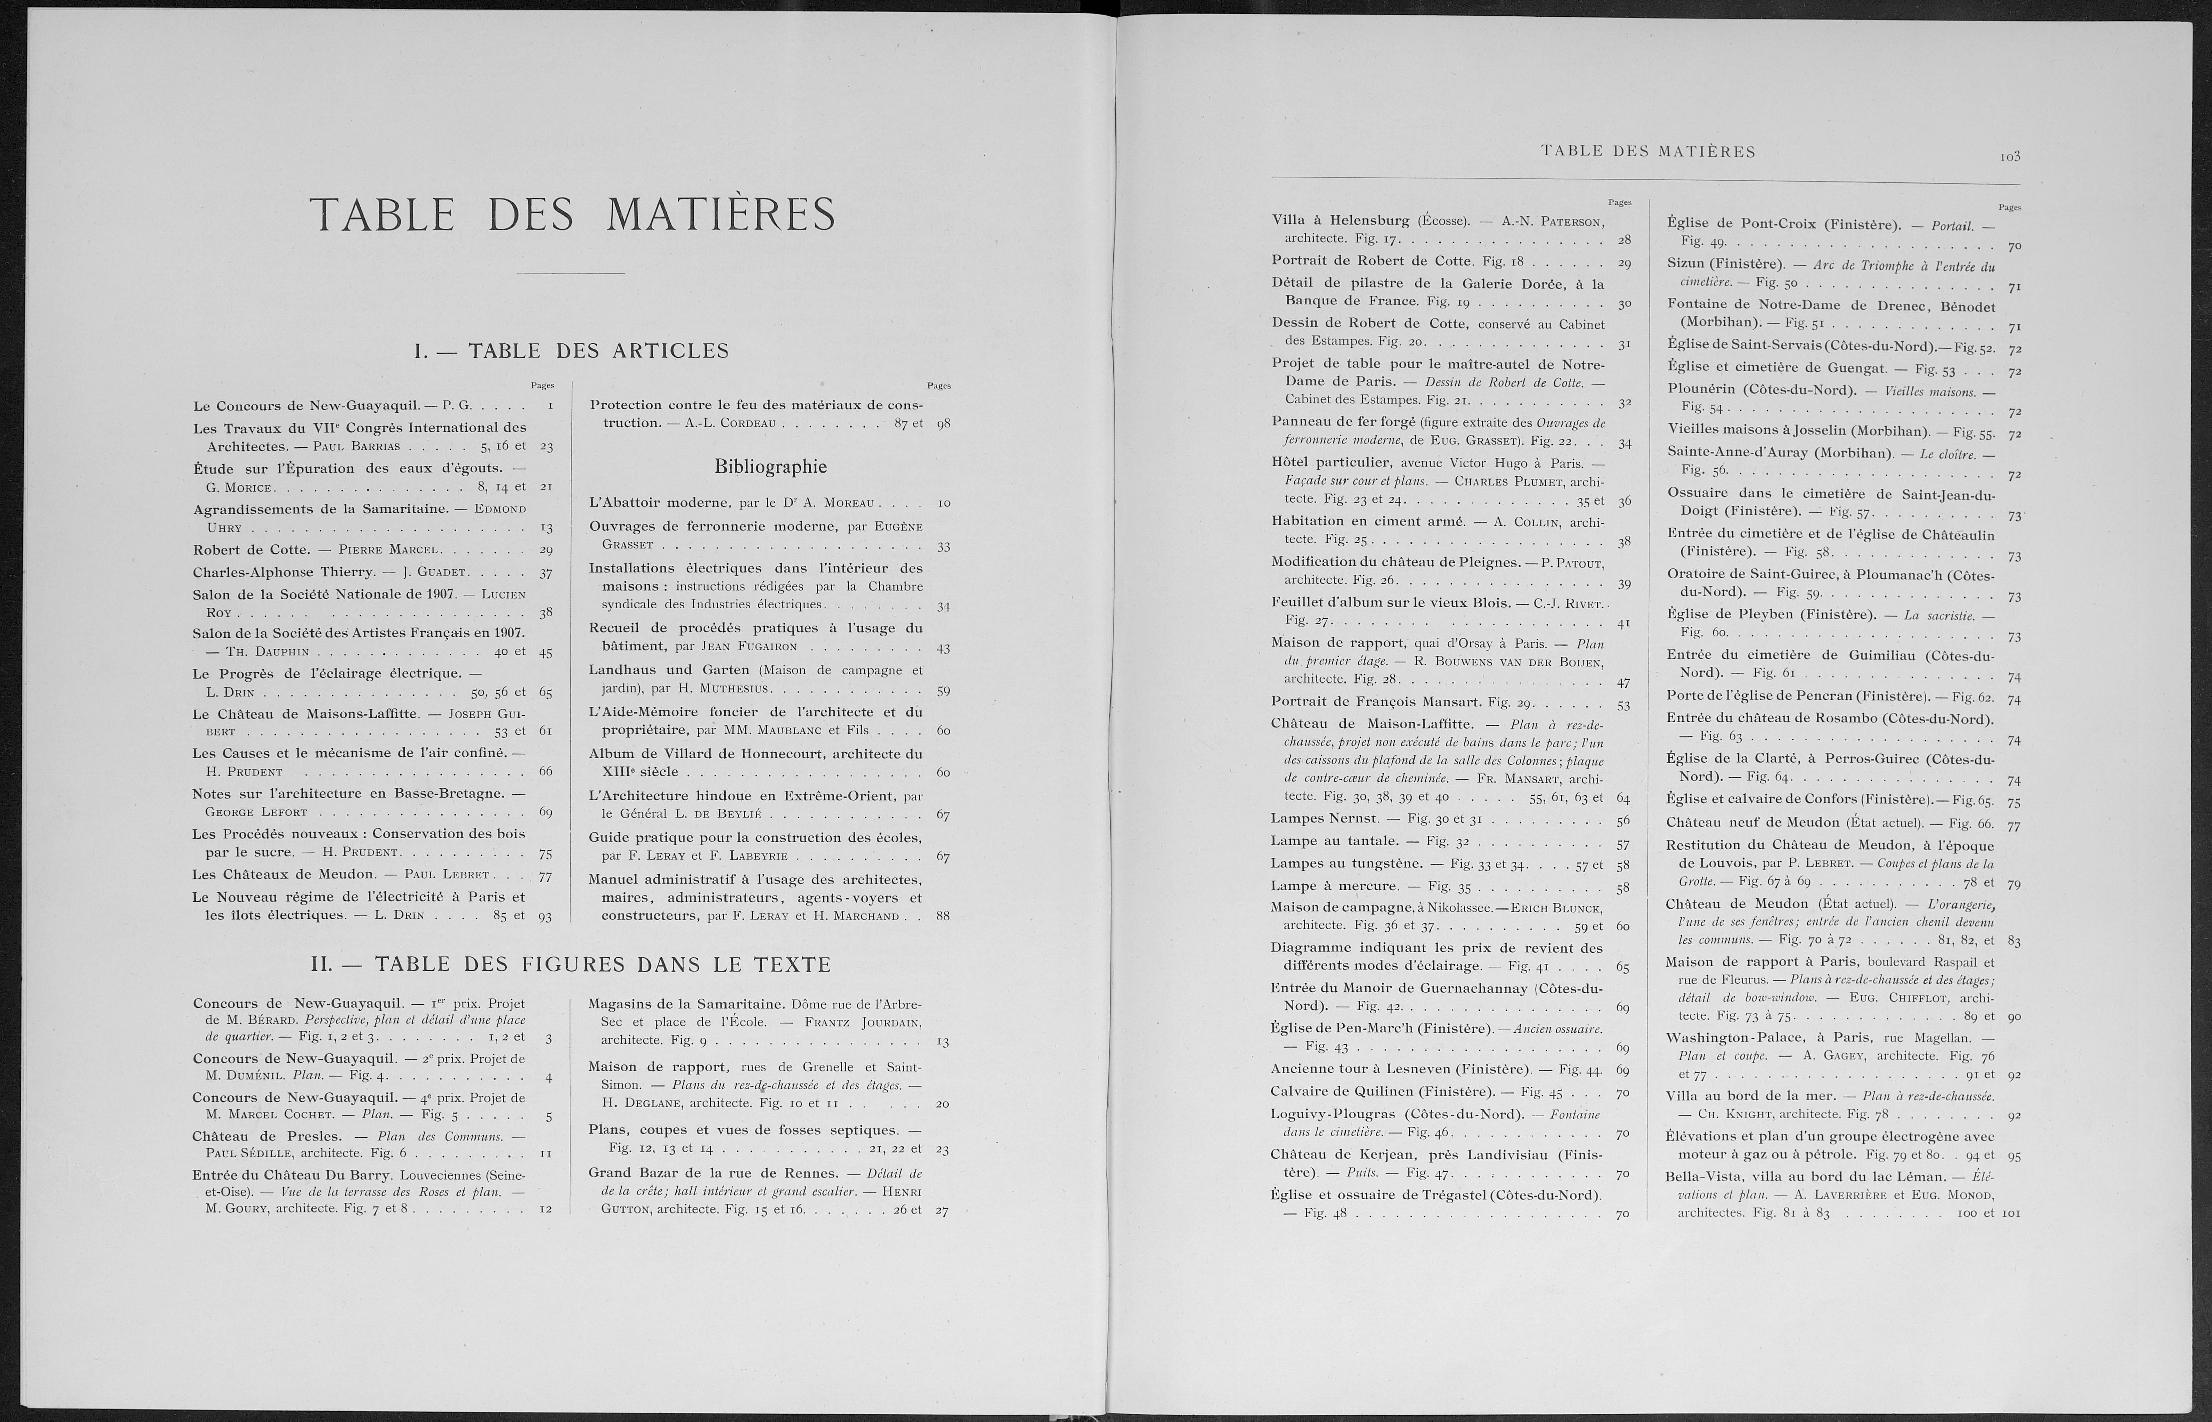 L'Architecte, Index, 1907 |